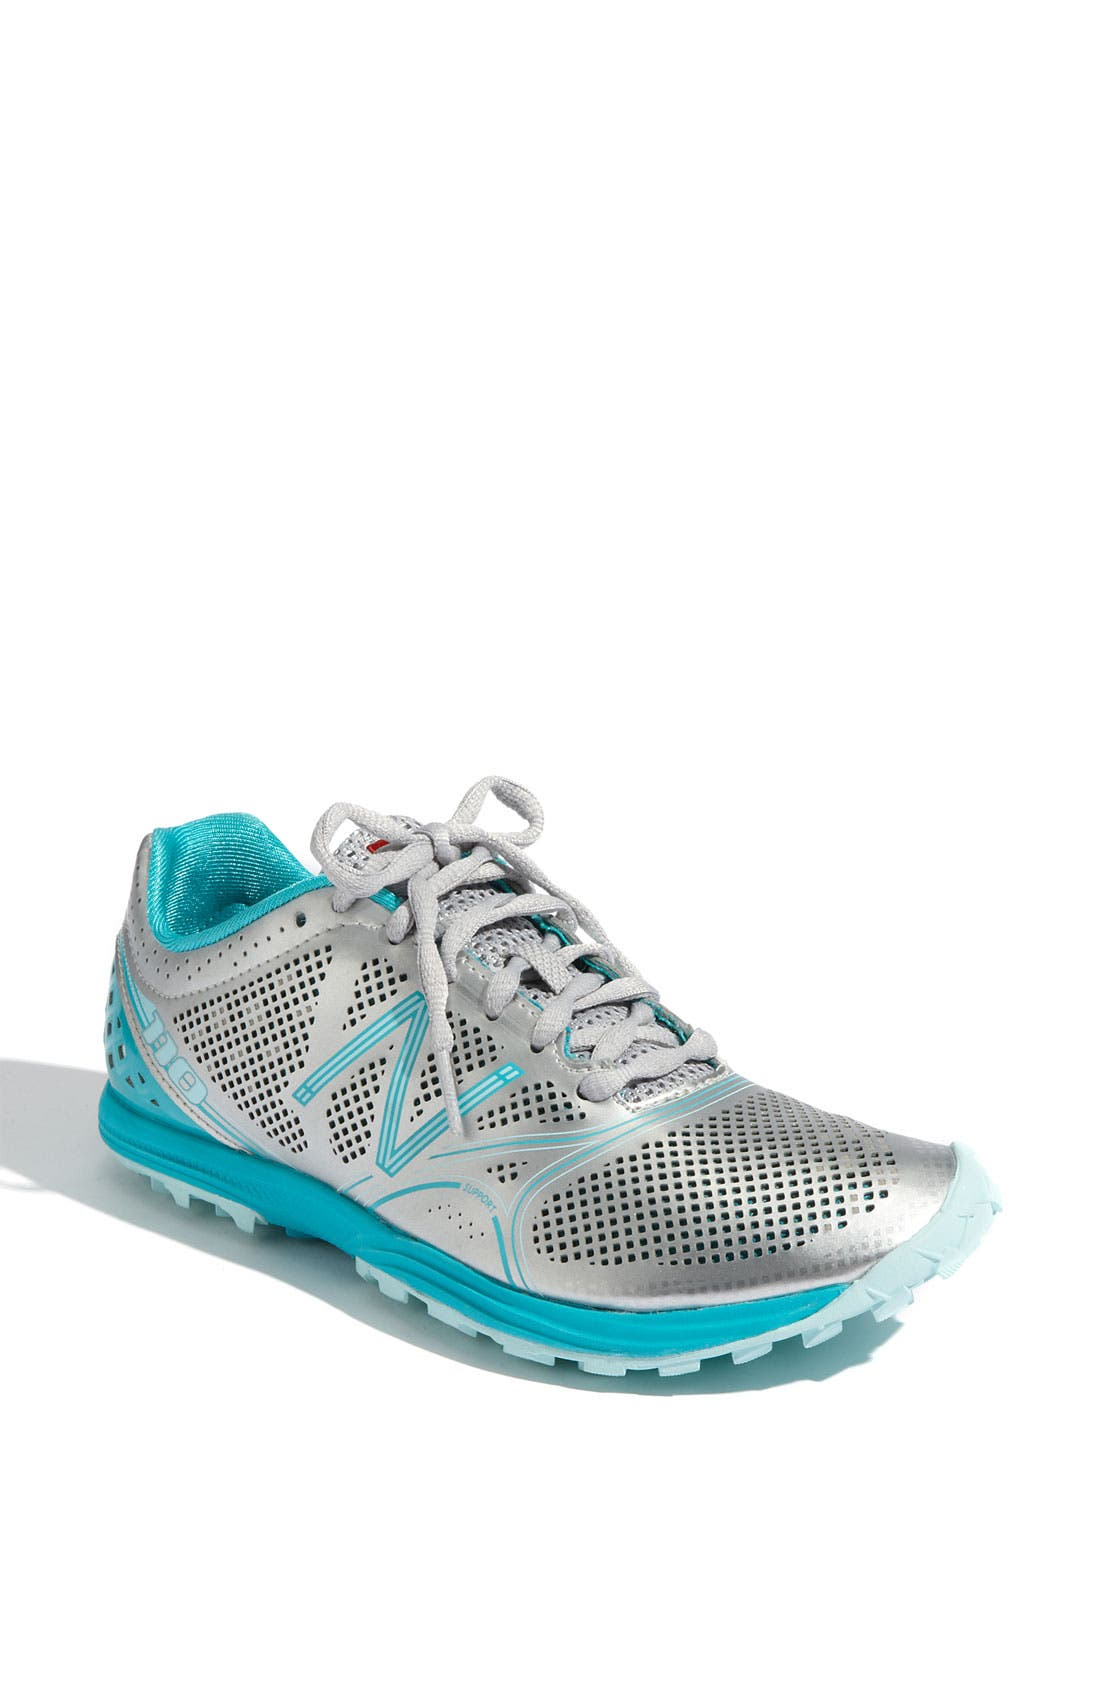 Main Image - New Balance '110' Trail Running Shoe (Women)